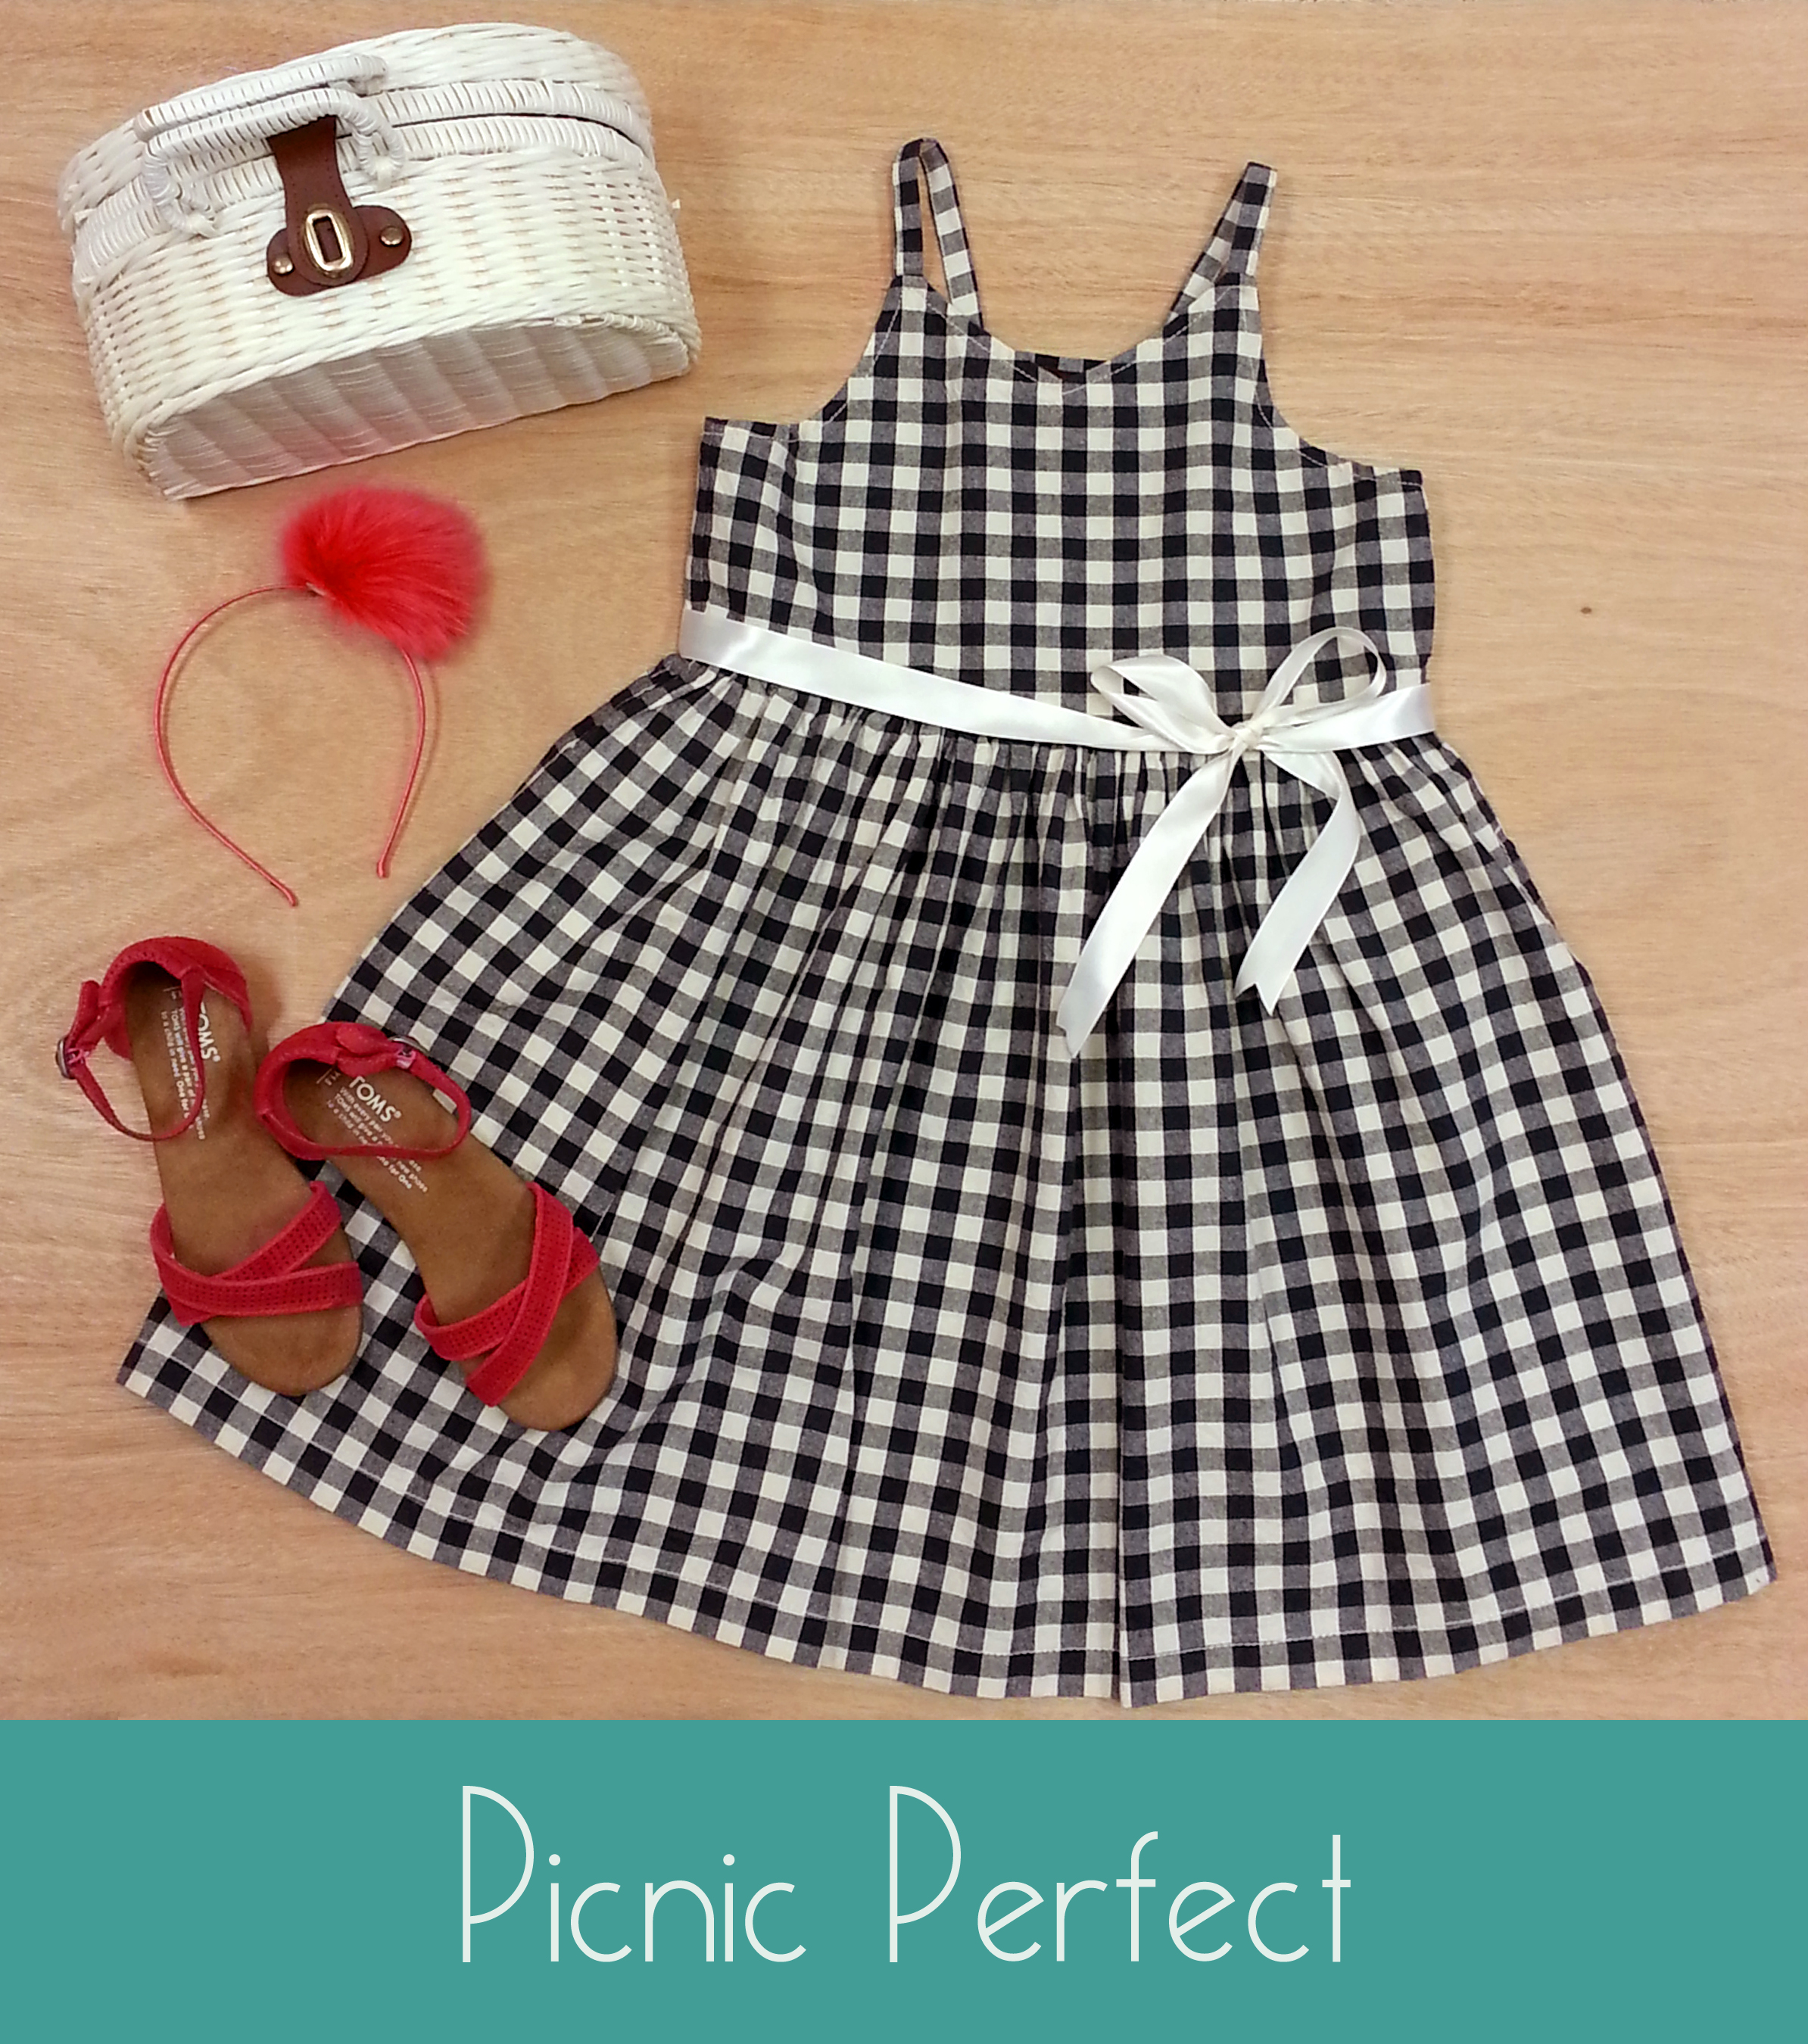 A flirty gingham dress accessorized perfectly for picnicking.